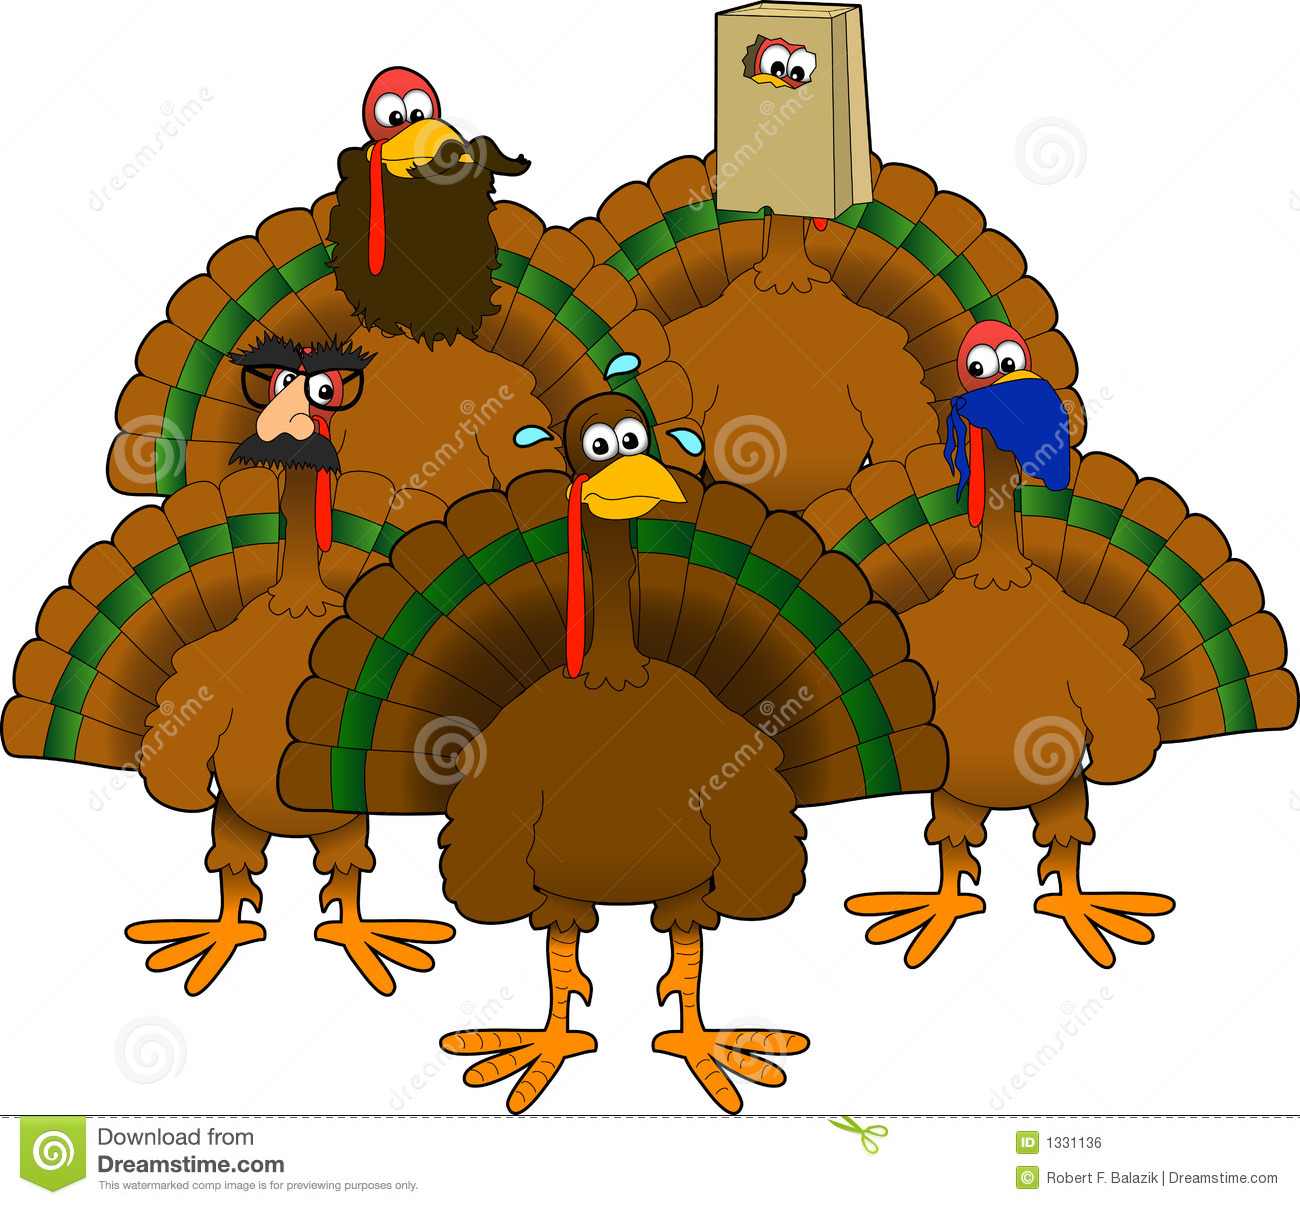 Disguised_turkeys